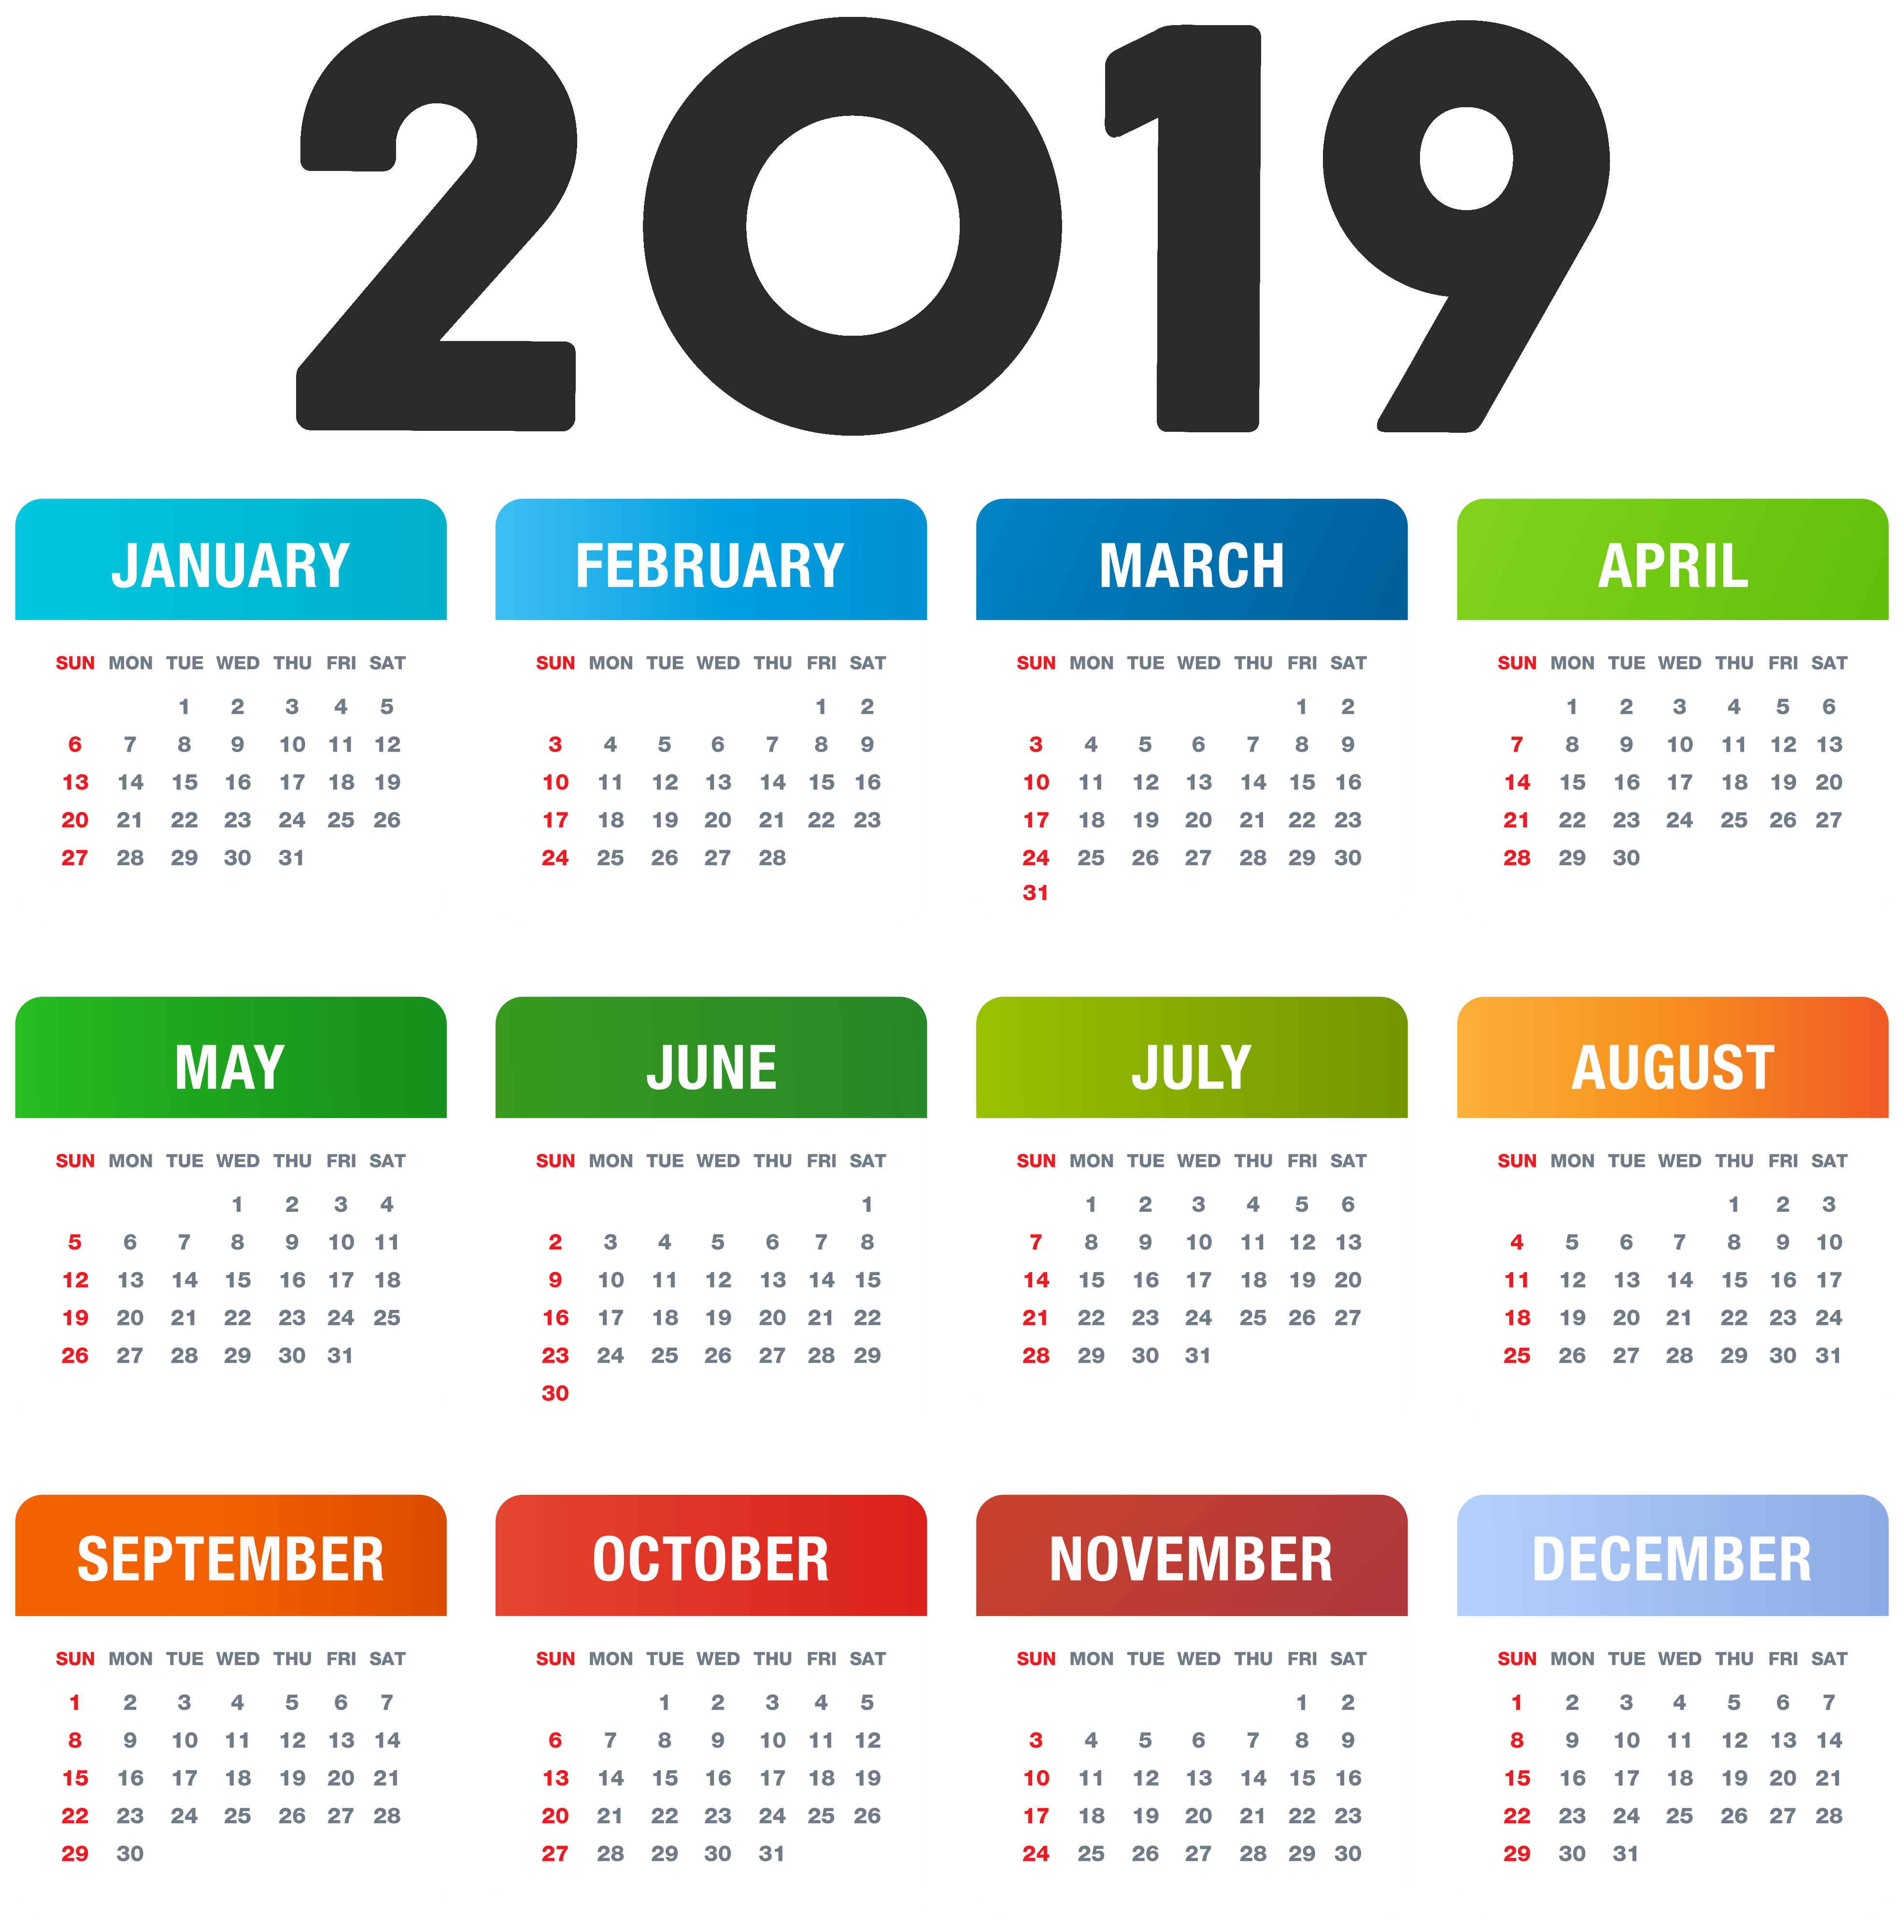 2019_Calendar_Colorful_Transparent_PNG_Image-1